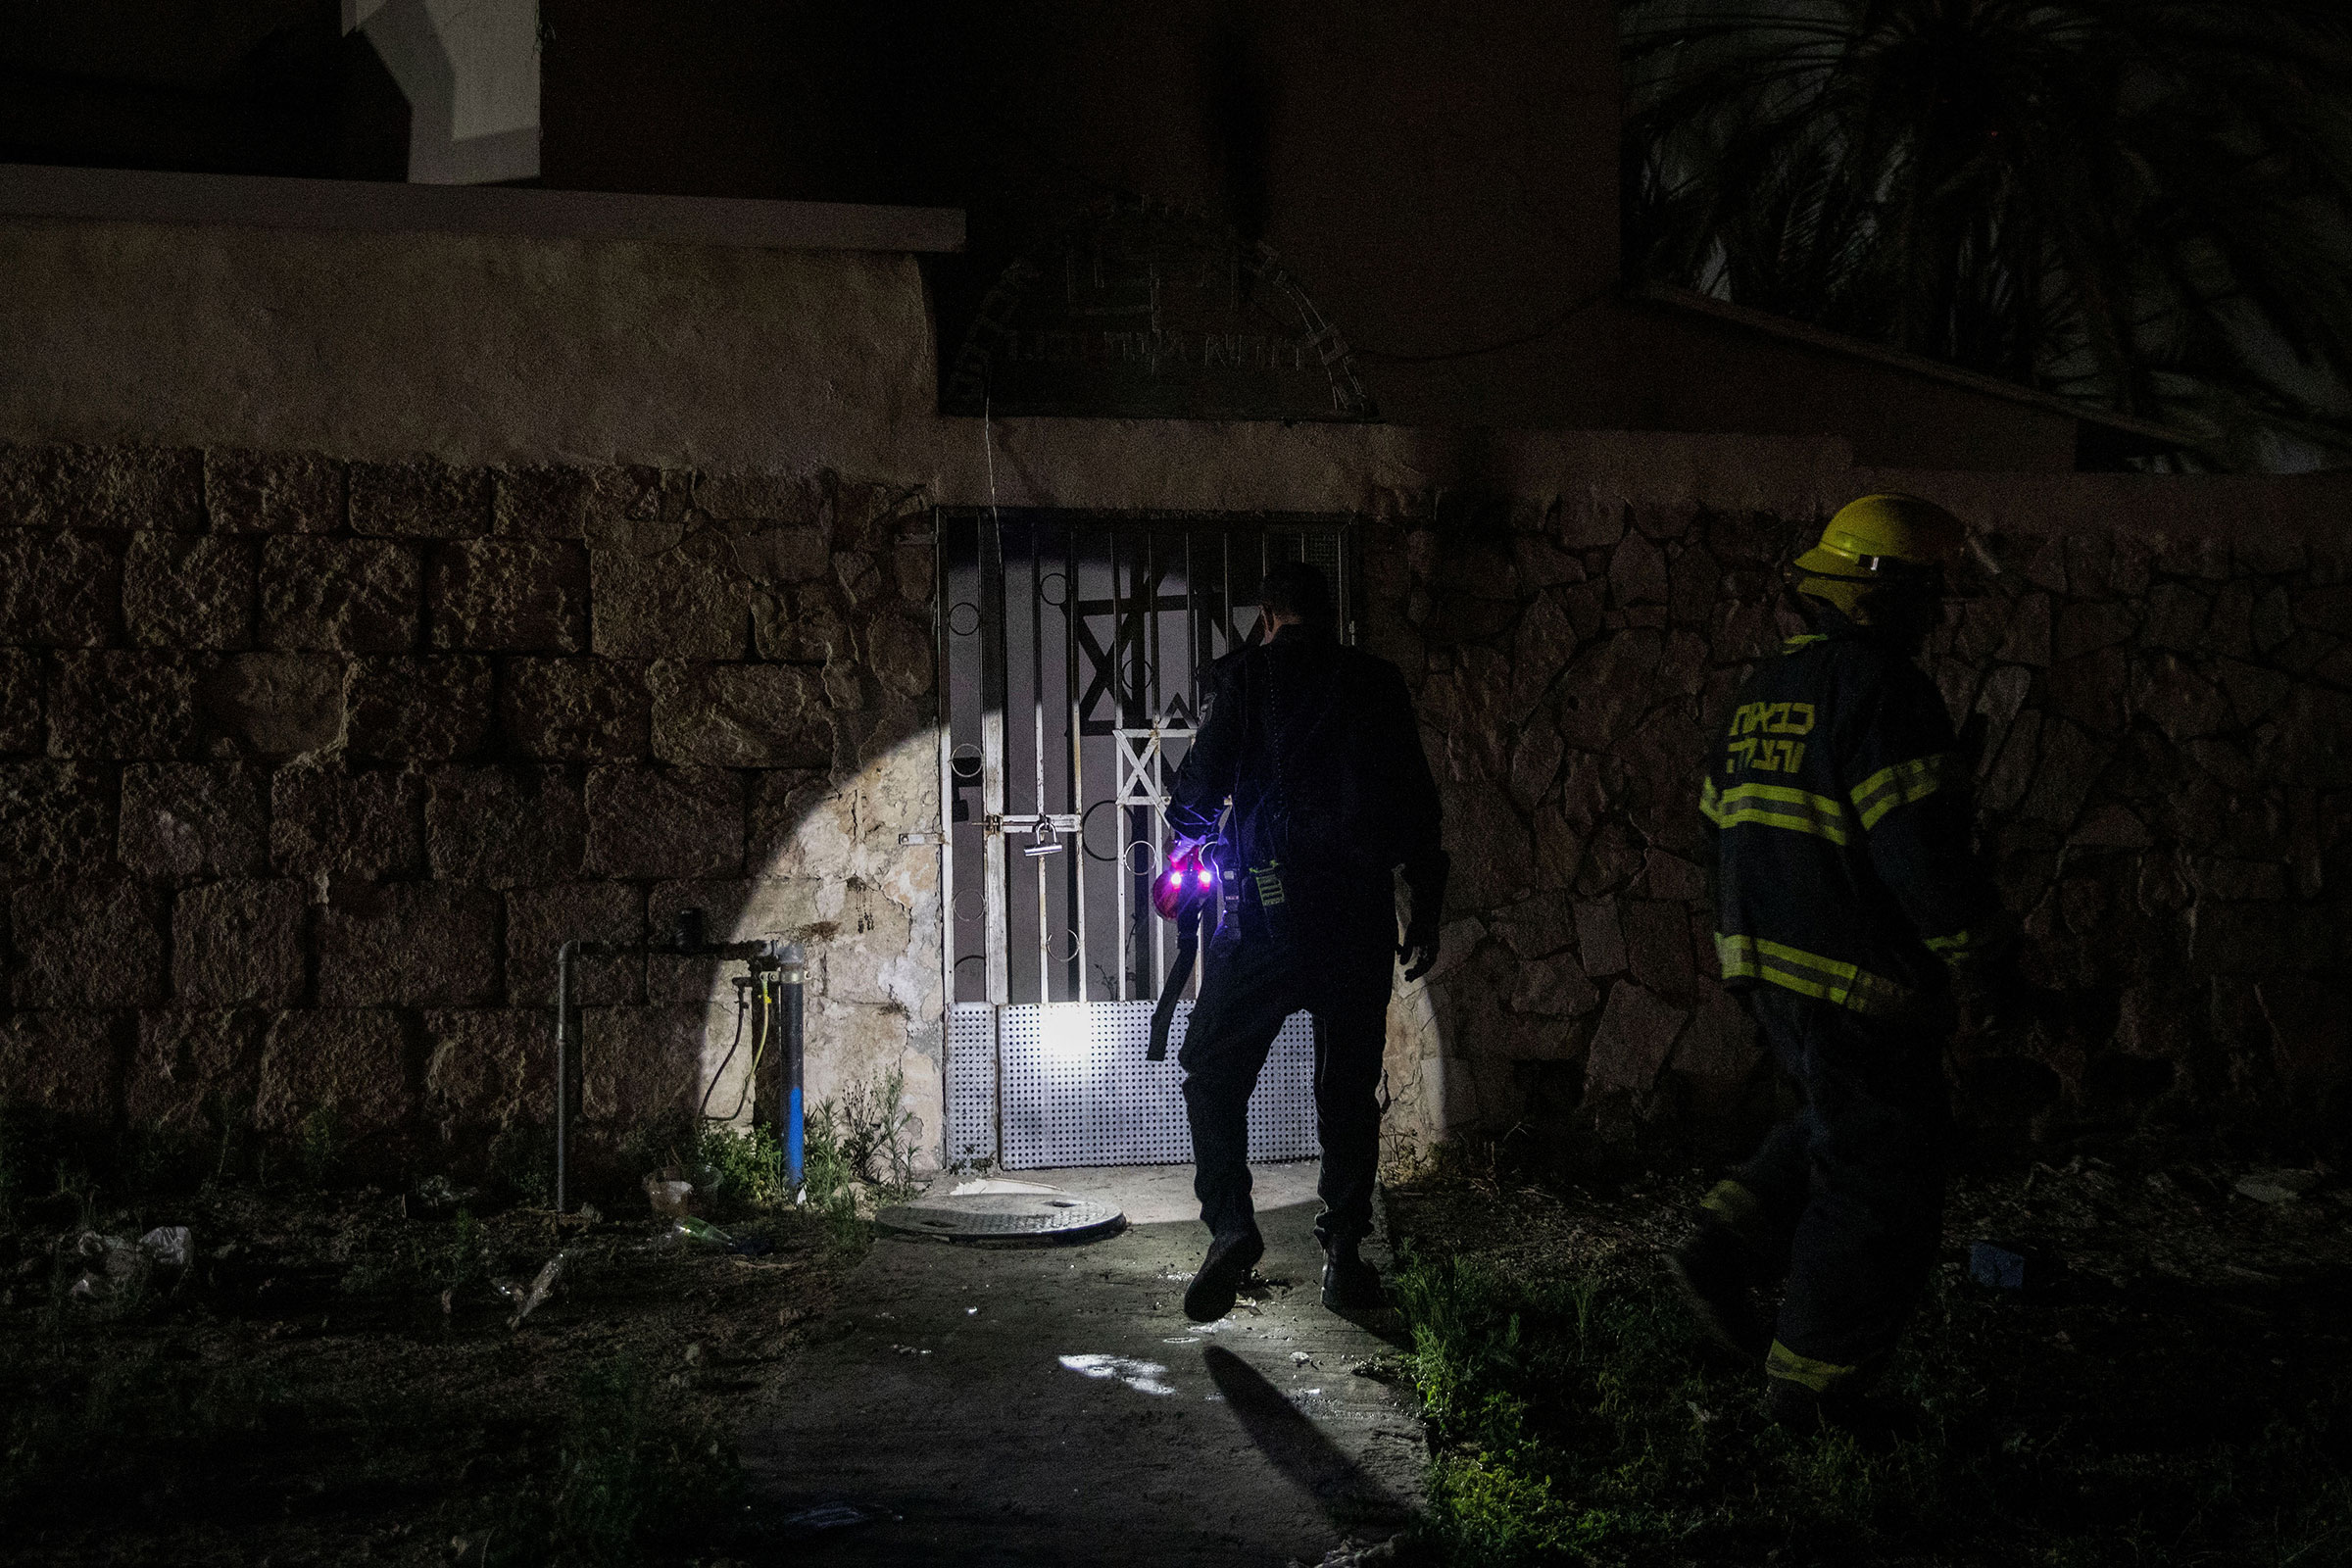 Firefighters inspect a synagogue that was set on fire during violent clashes in the mixed Arab-Jewish city of Lod, Israel, on May14, 2021.